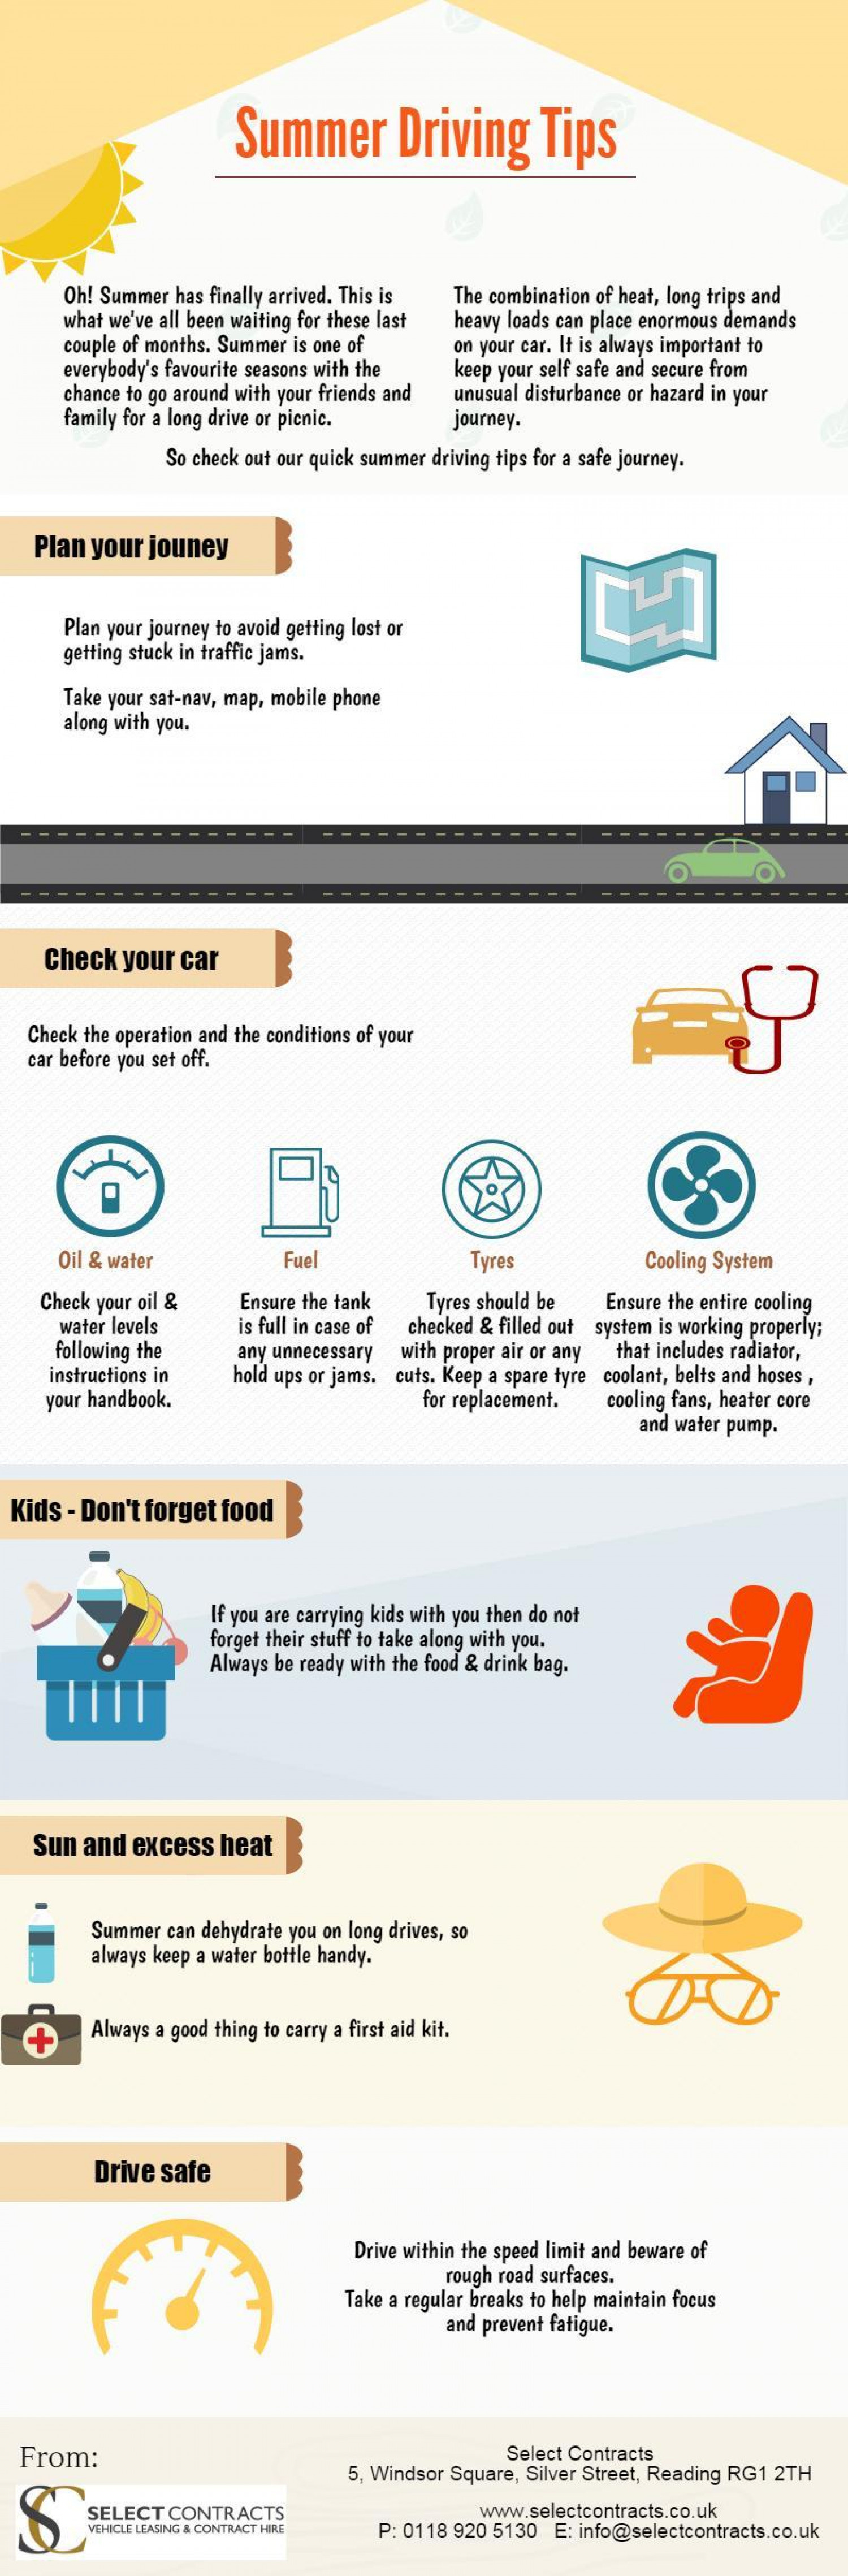 Summer Driving Tips Infographic